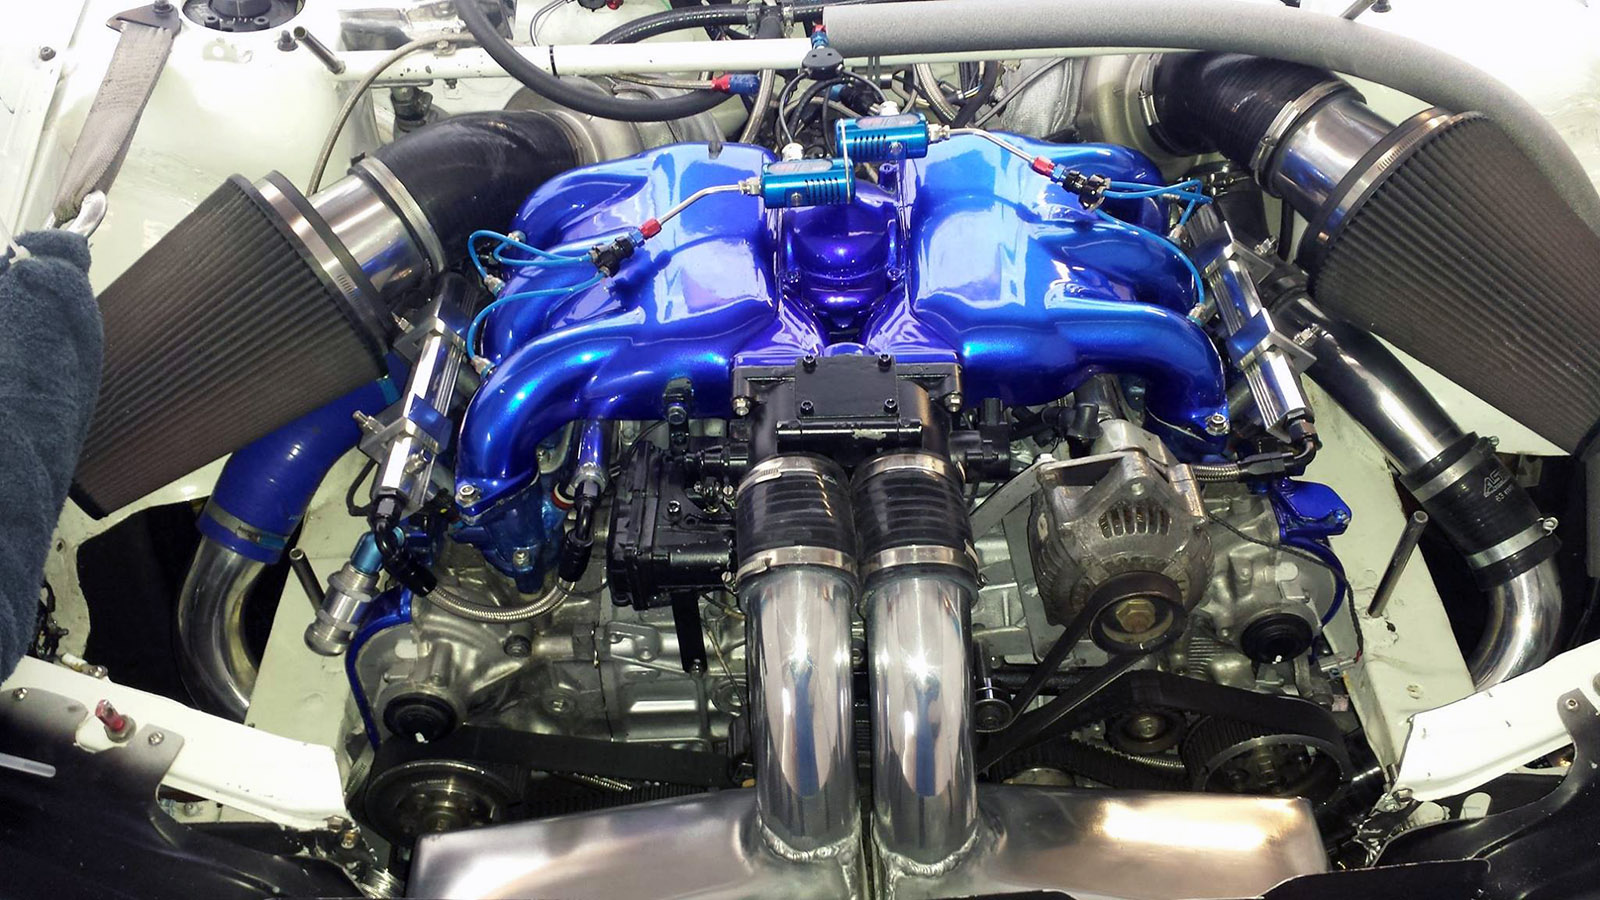 Afp Subaru Wrx With A Twin Turbo Flat Six Engine Swap Depot